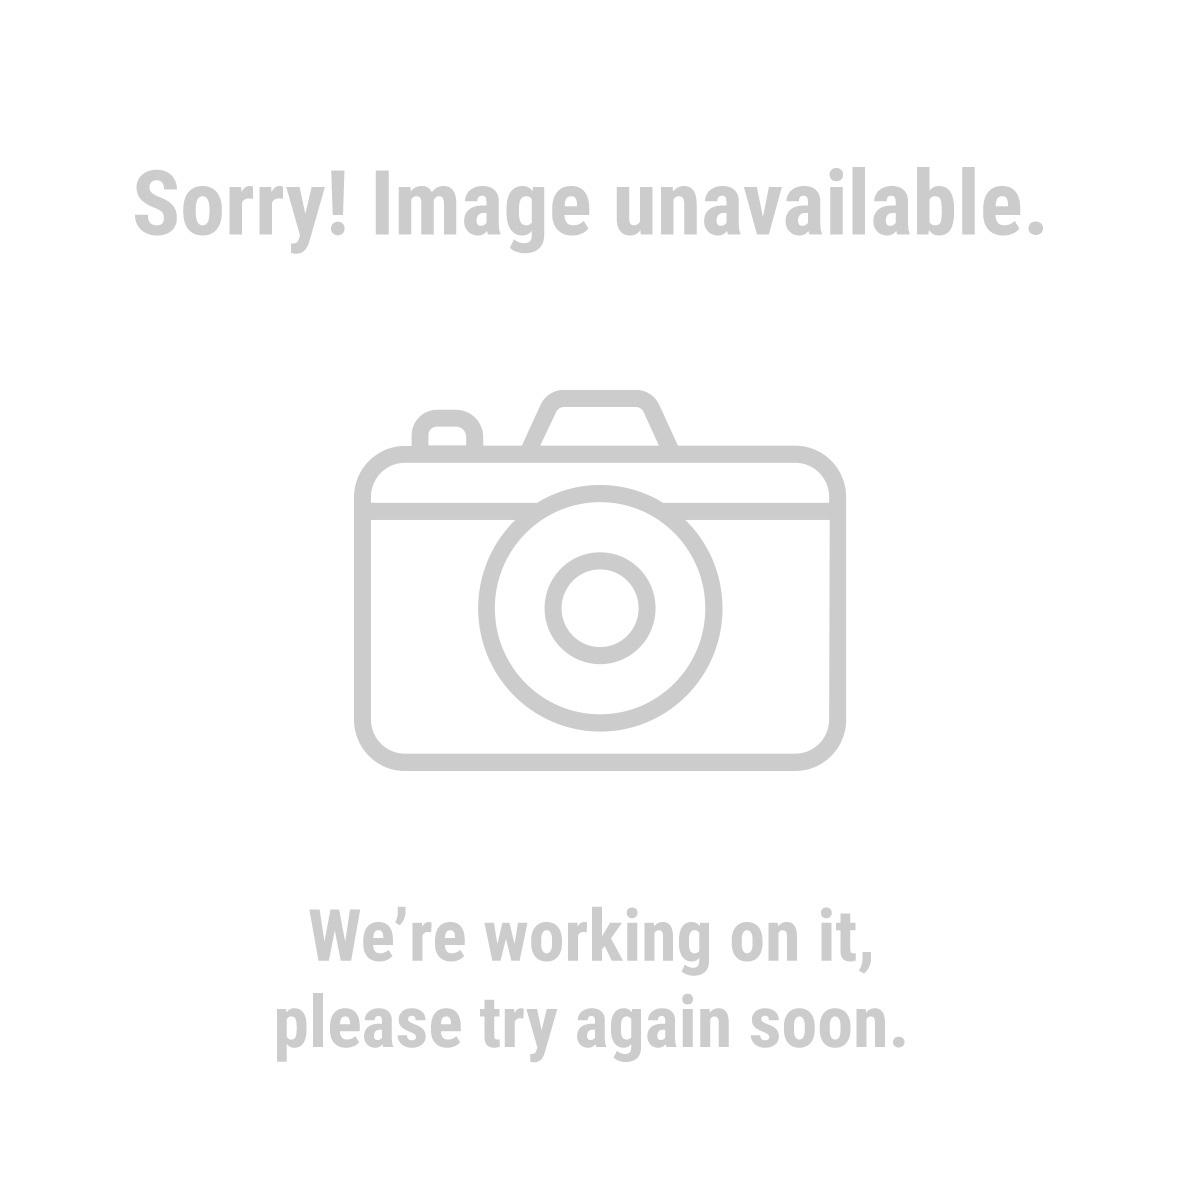 Cen-Tech 60332 1000 Gram Digital Scale